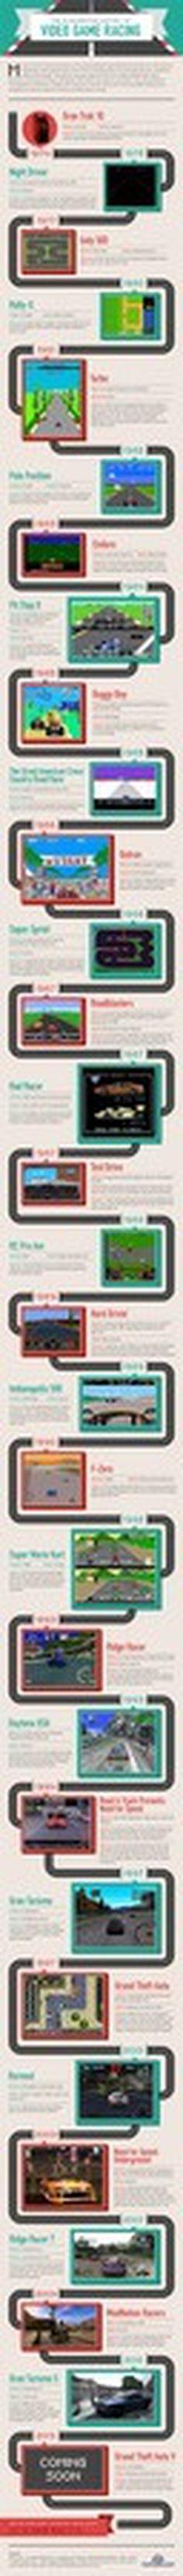 Video game driving graphic #infographics #racing #video #games